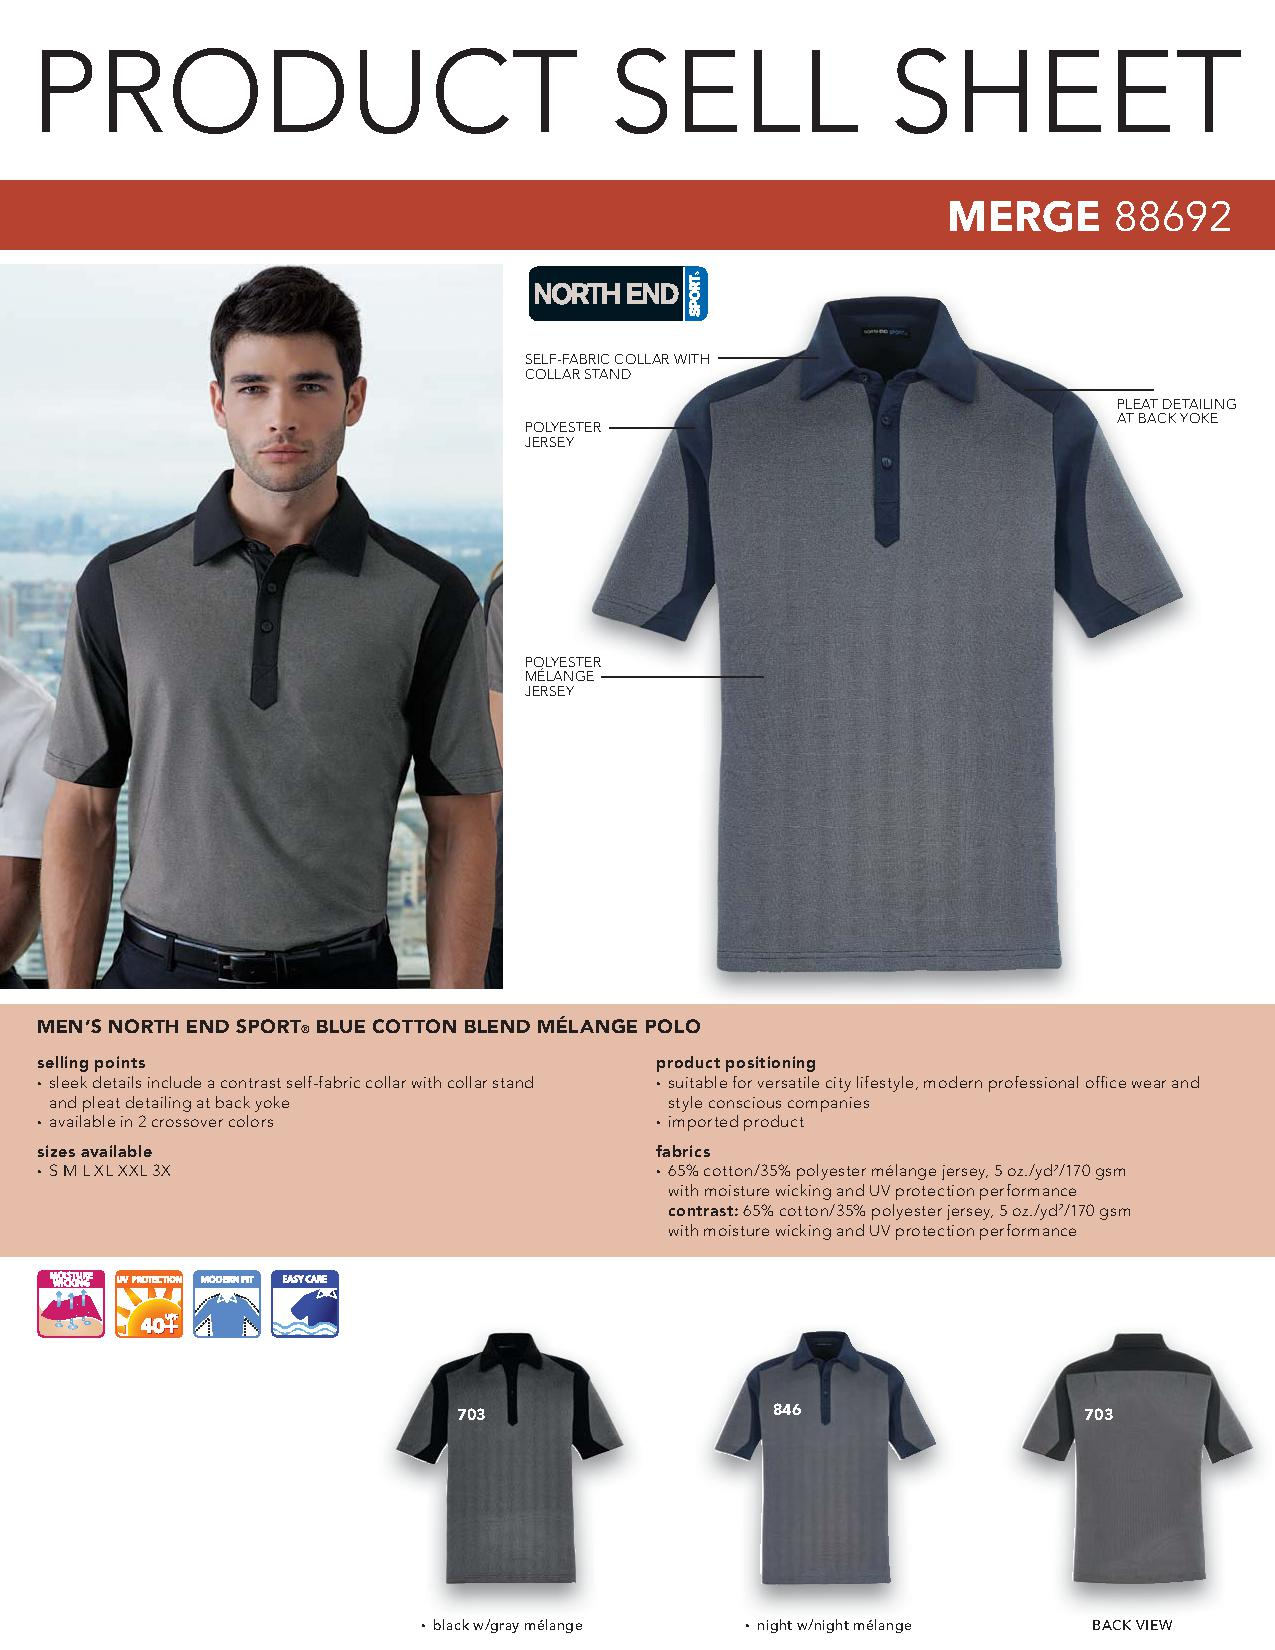 Ash City Performance 88692 - Merge Cotton Blend Melange Polo